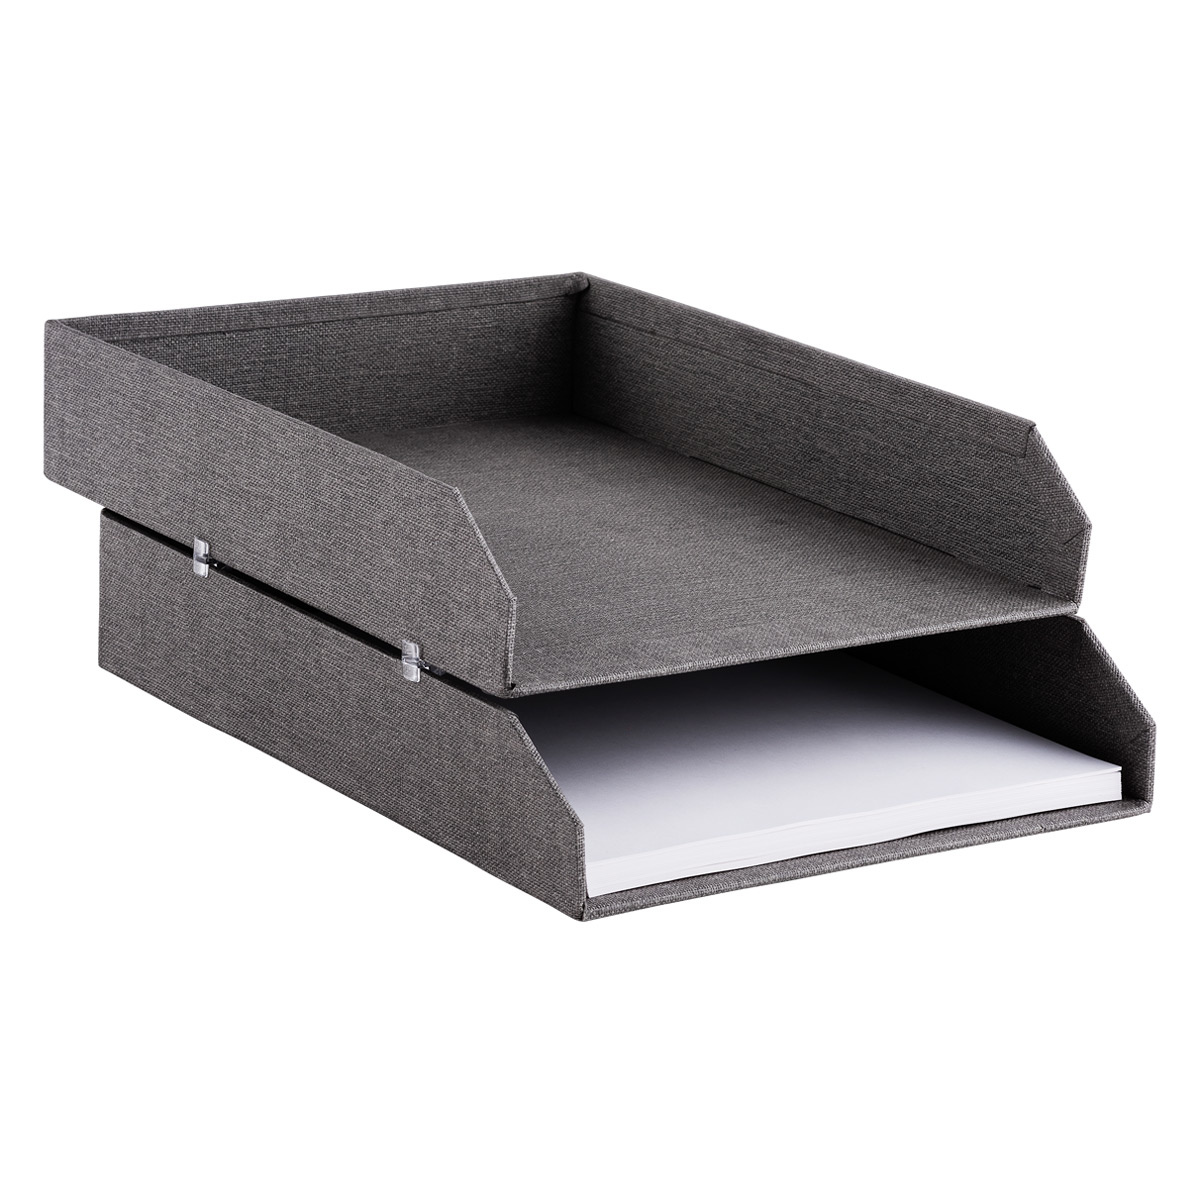 Bigso Marten Grey Set Of Stackable Letter Trays The Container Store Jpg  1200x1200 Stackable Office Trays